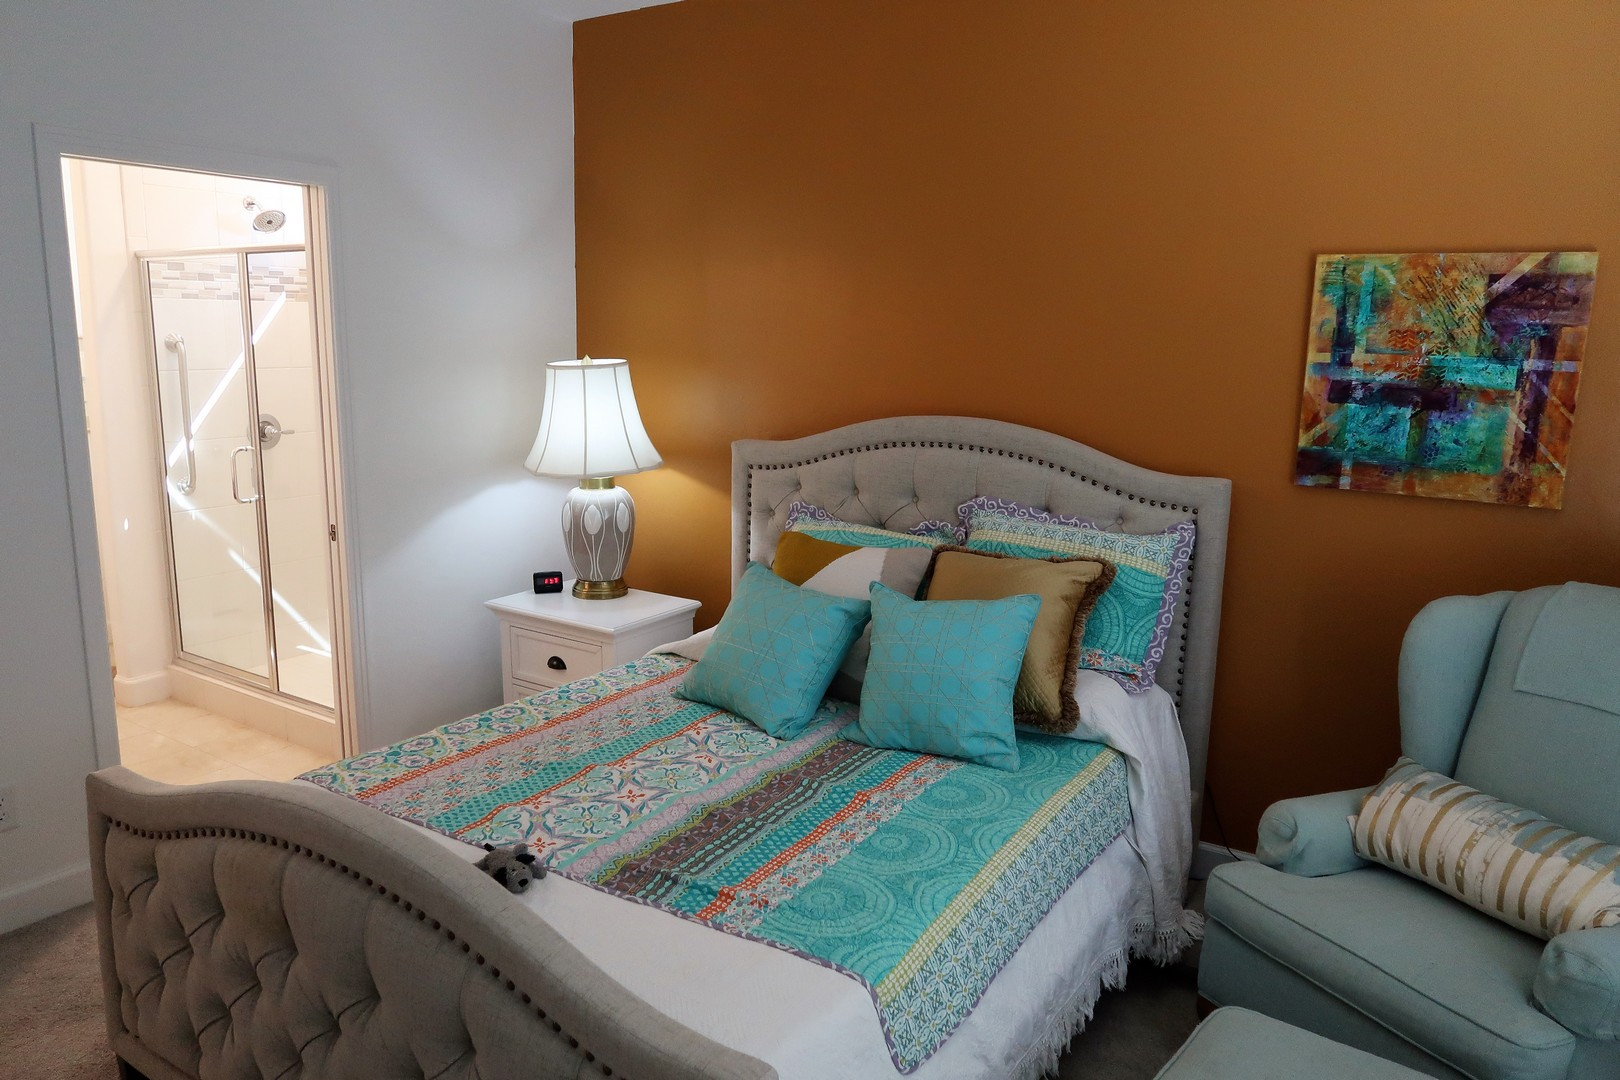 Master Suite - wall has been painted white